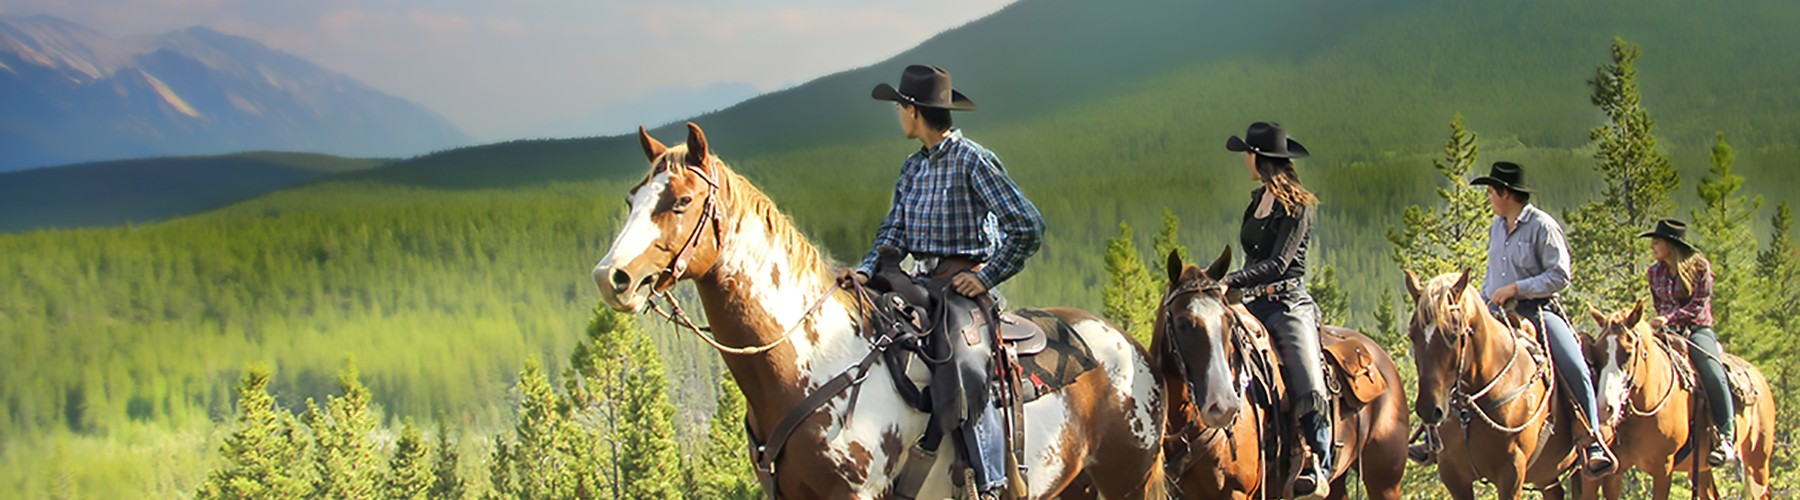 horseback riders enjoy a beautiful viewpoint